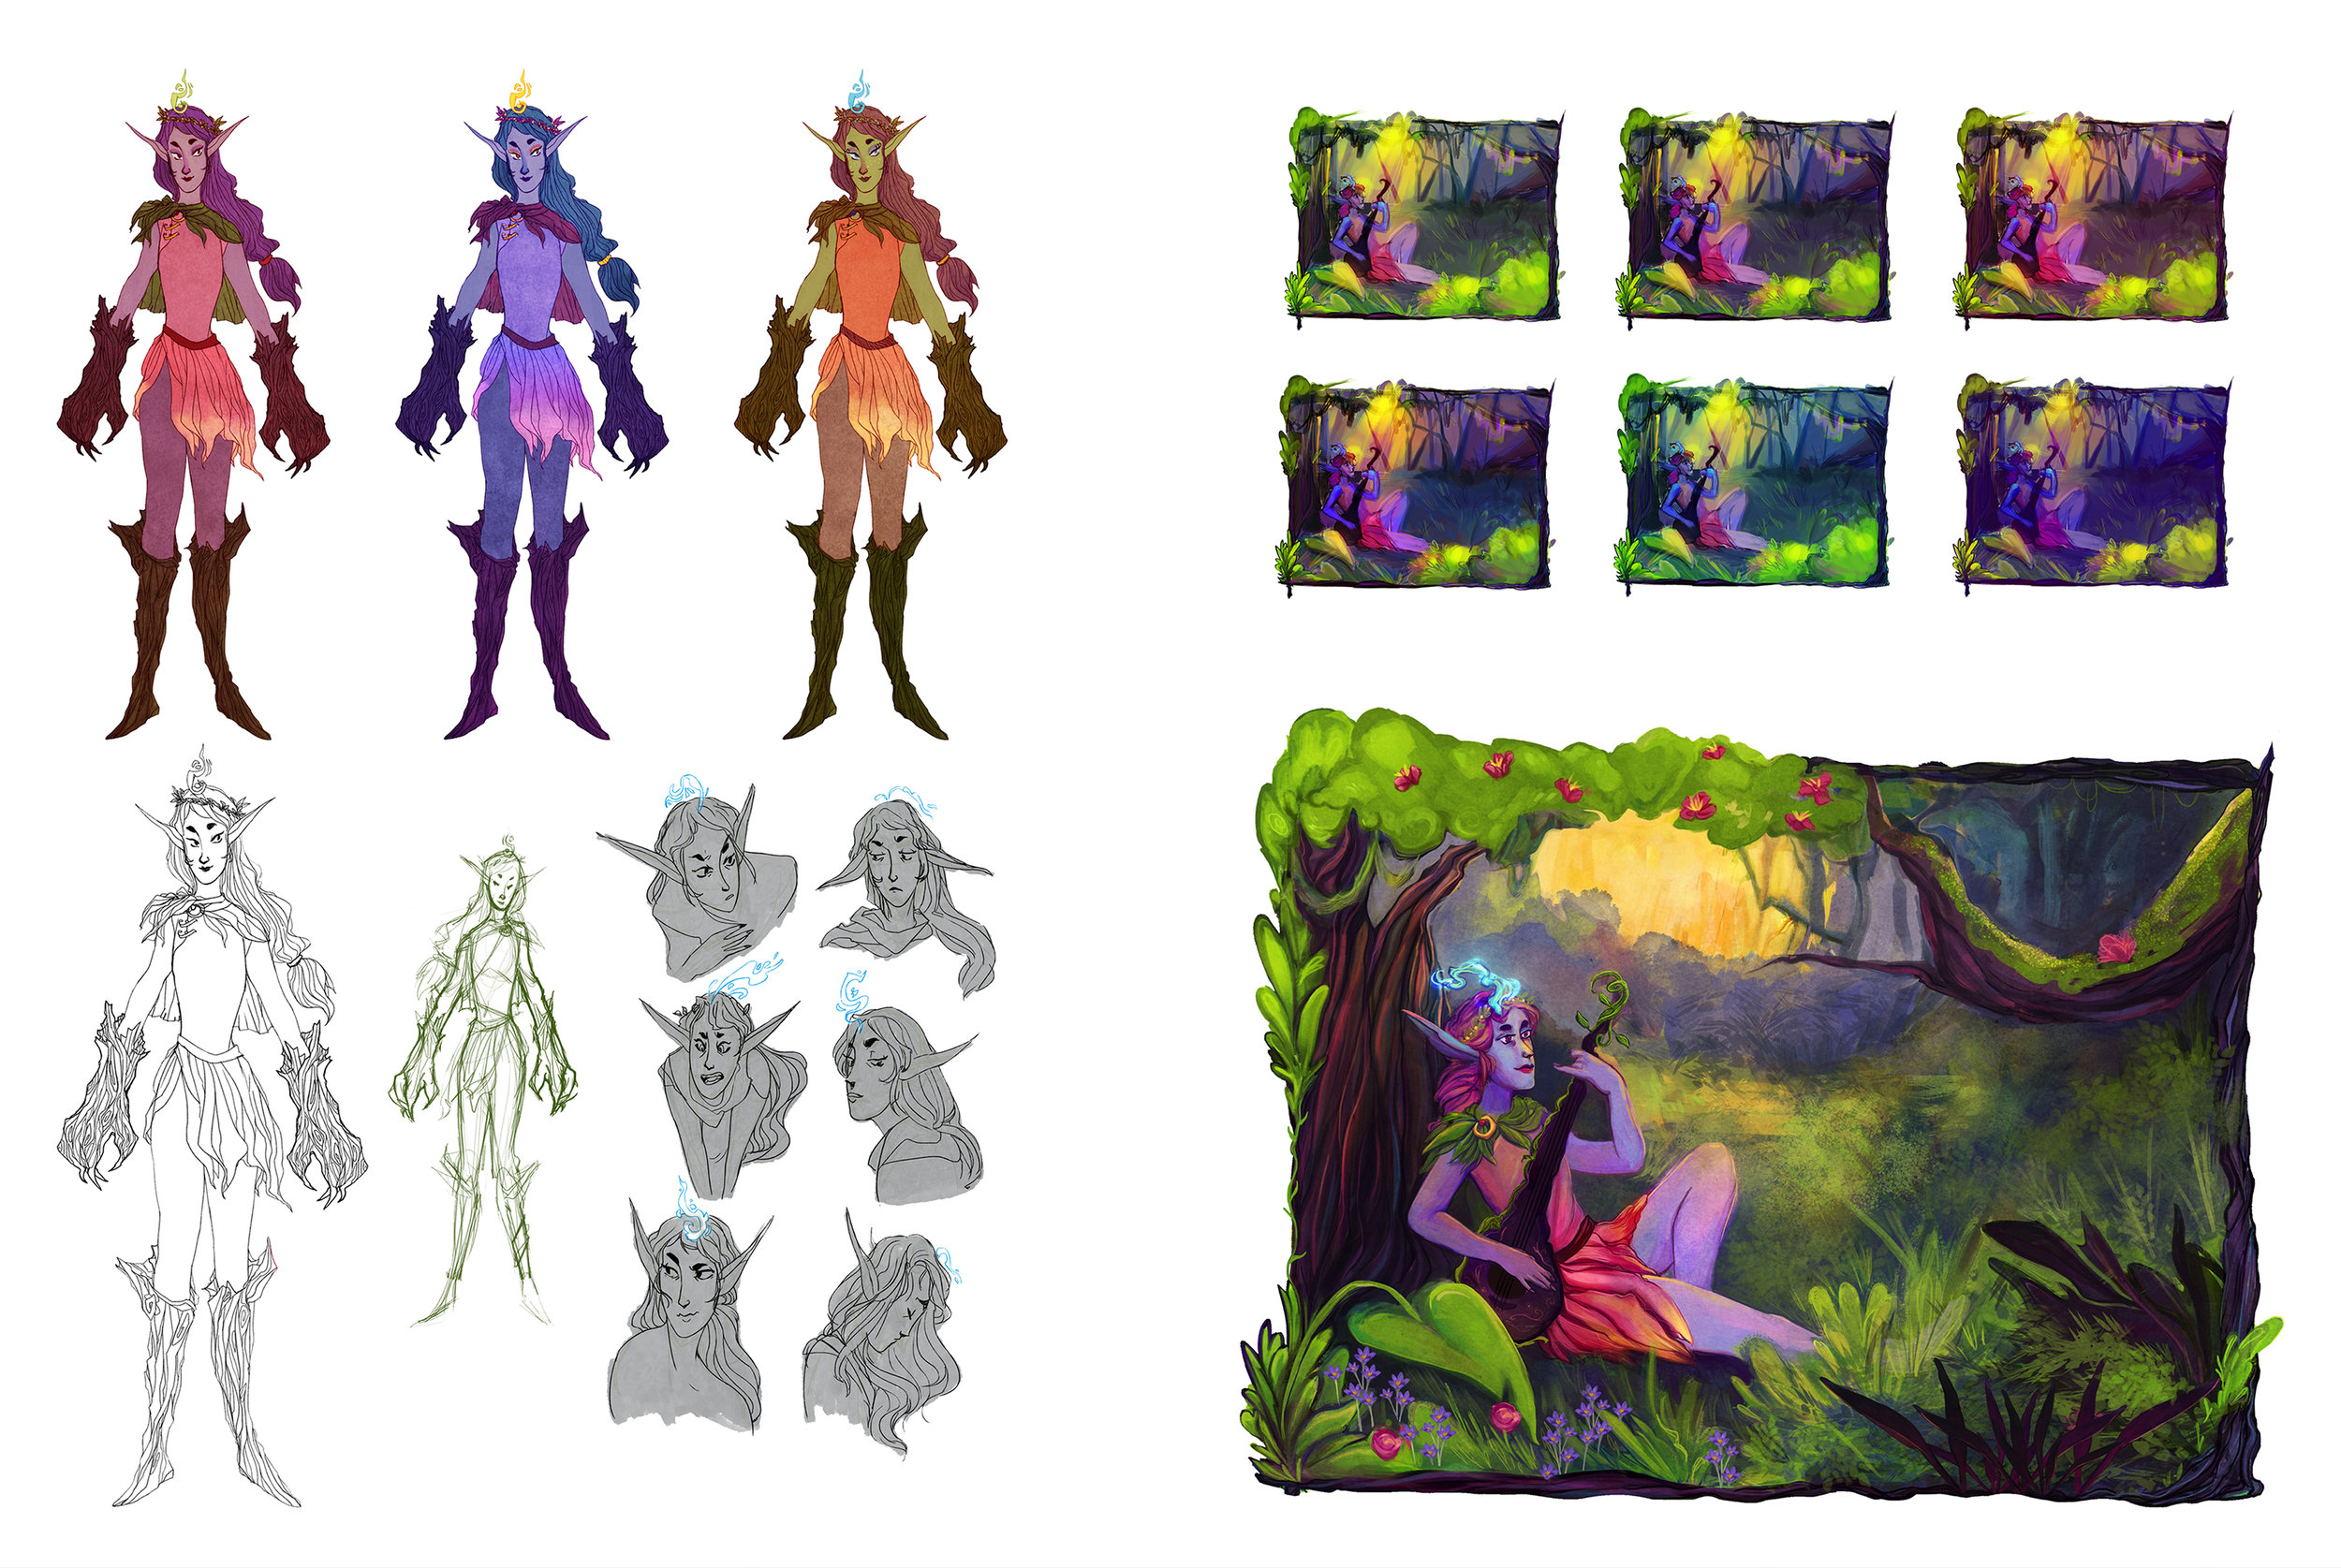 Character Design - Woodland Elf